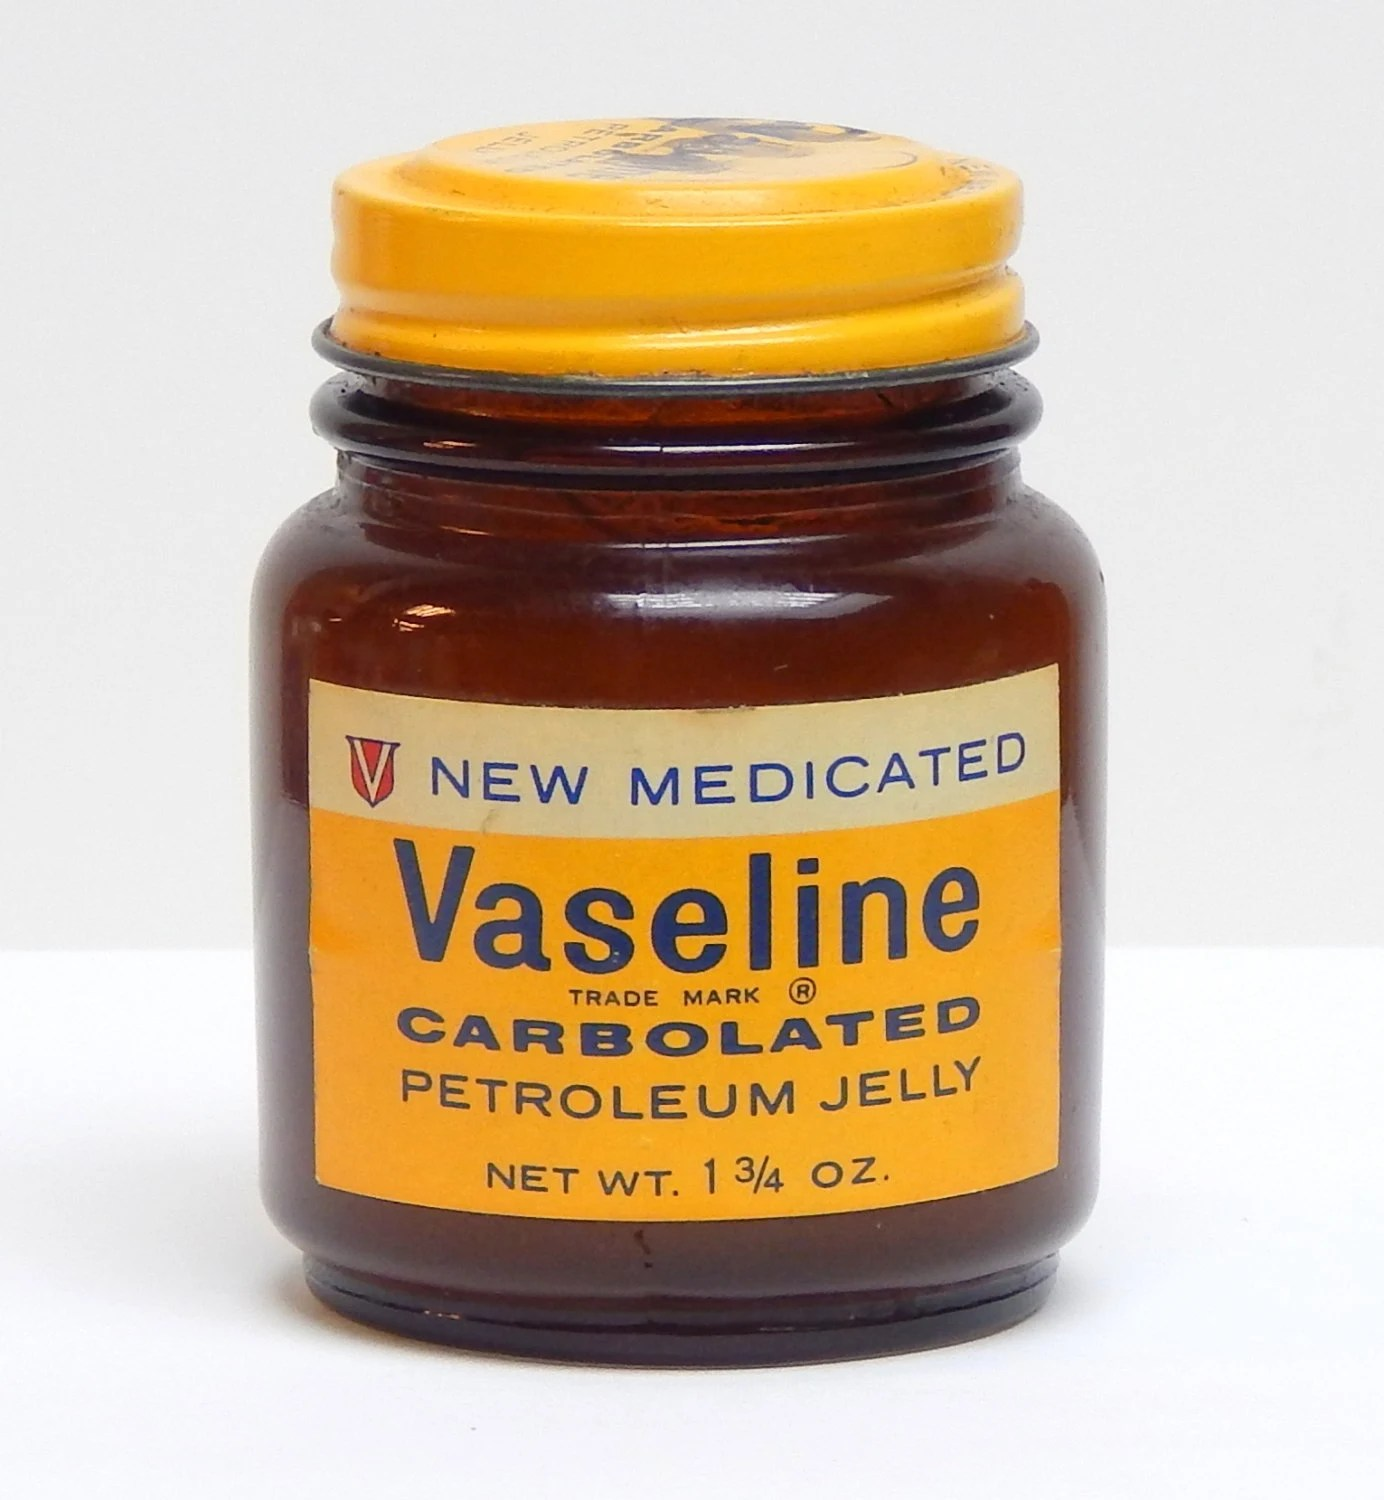 vaseline jar new medicated carbolated petroleum jelly old